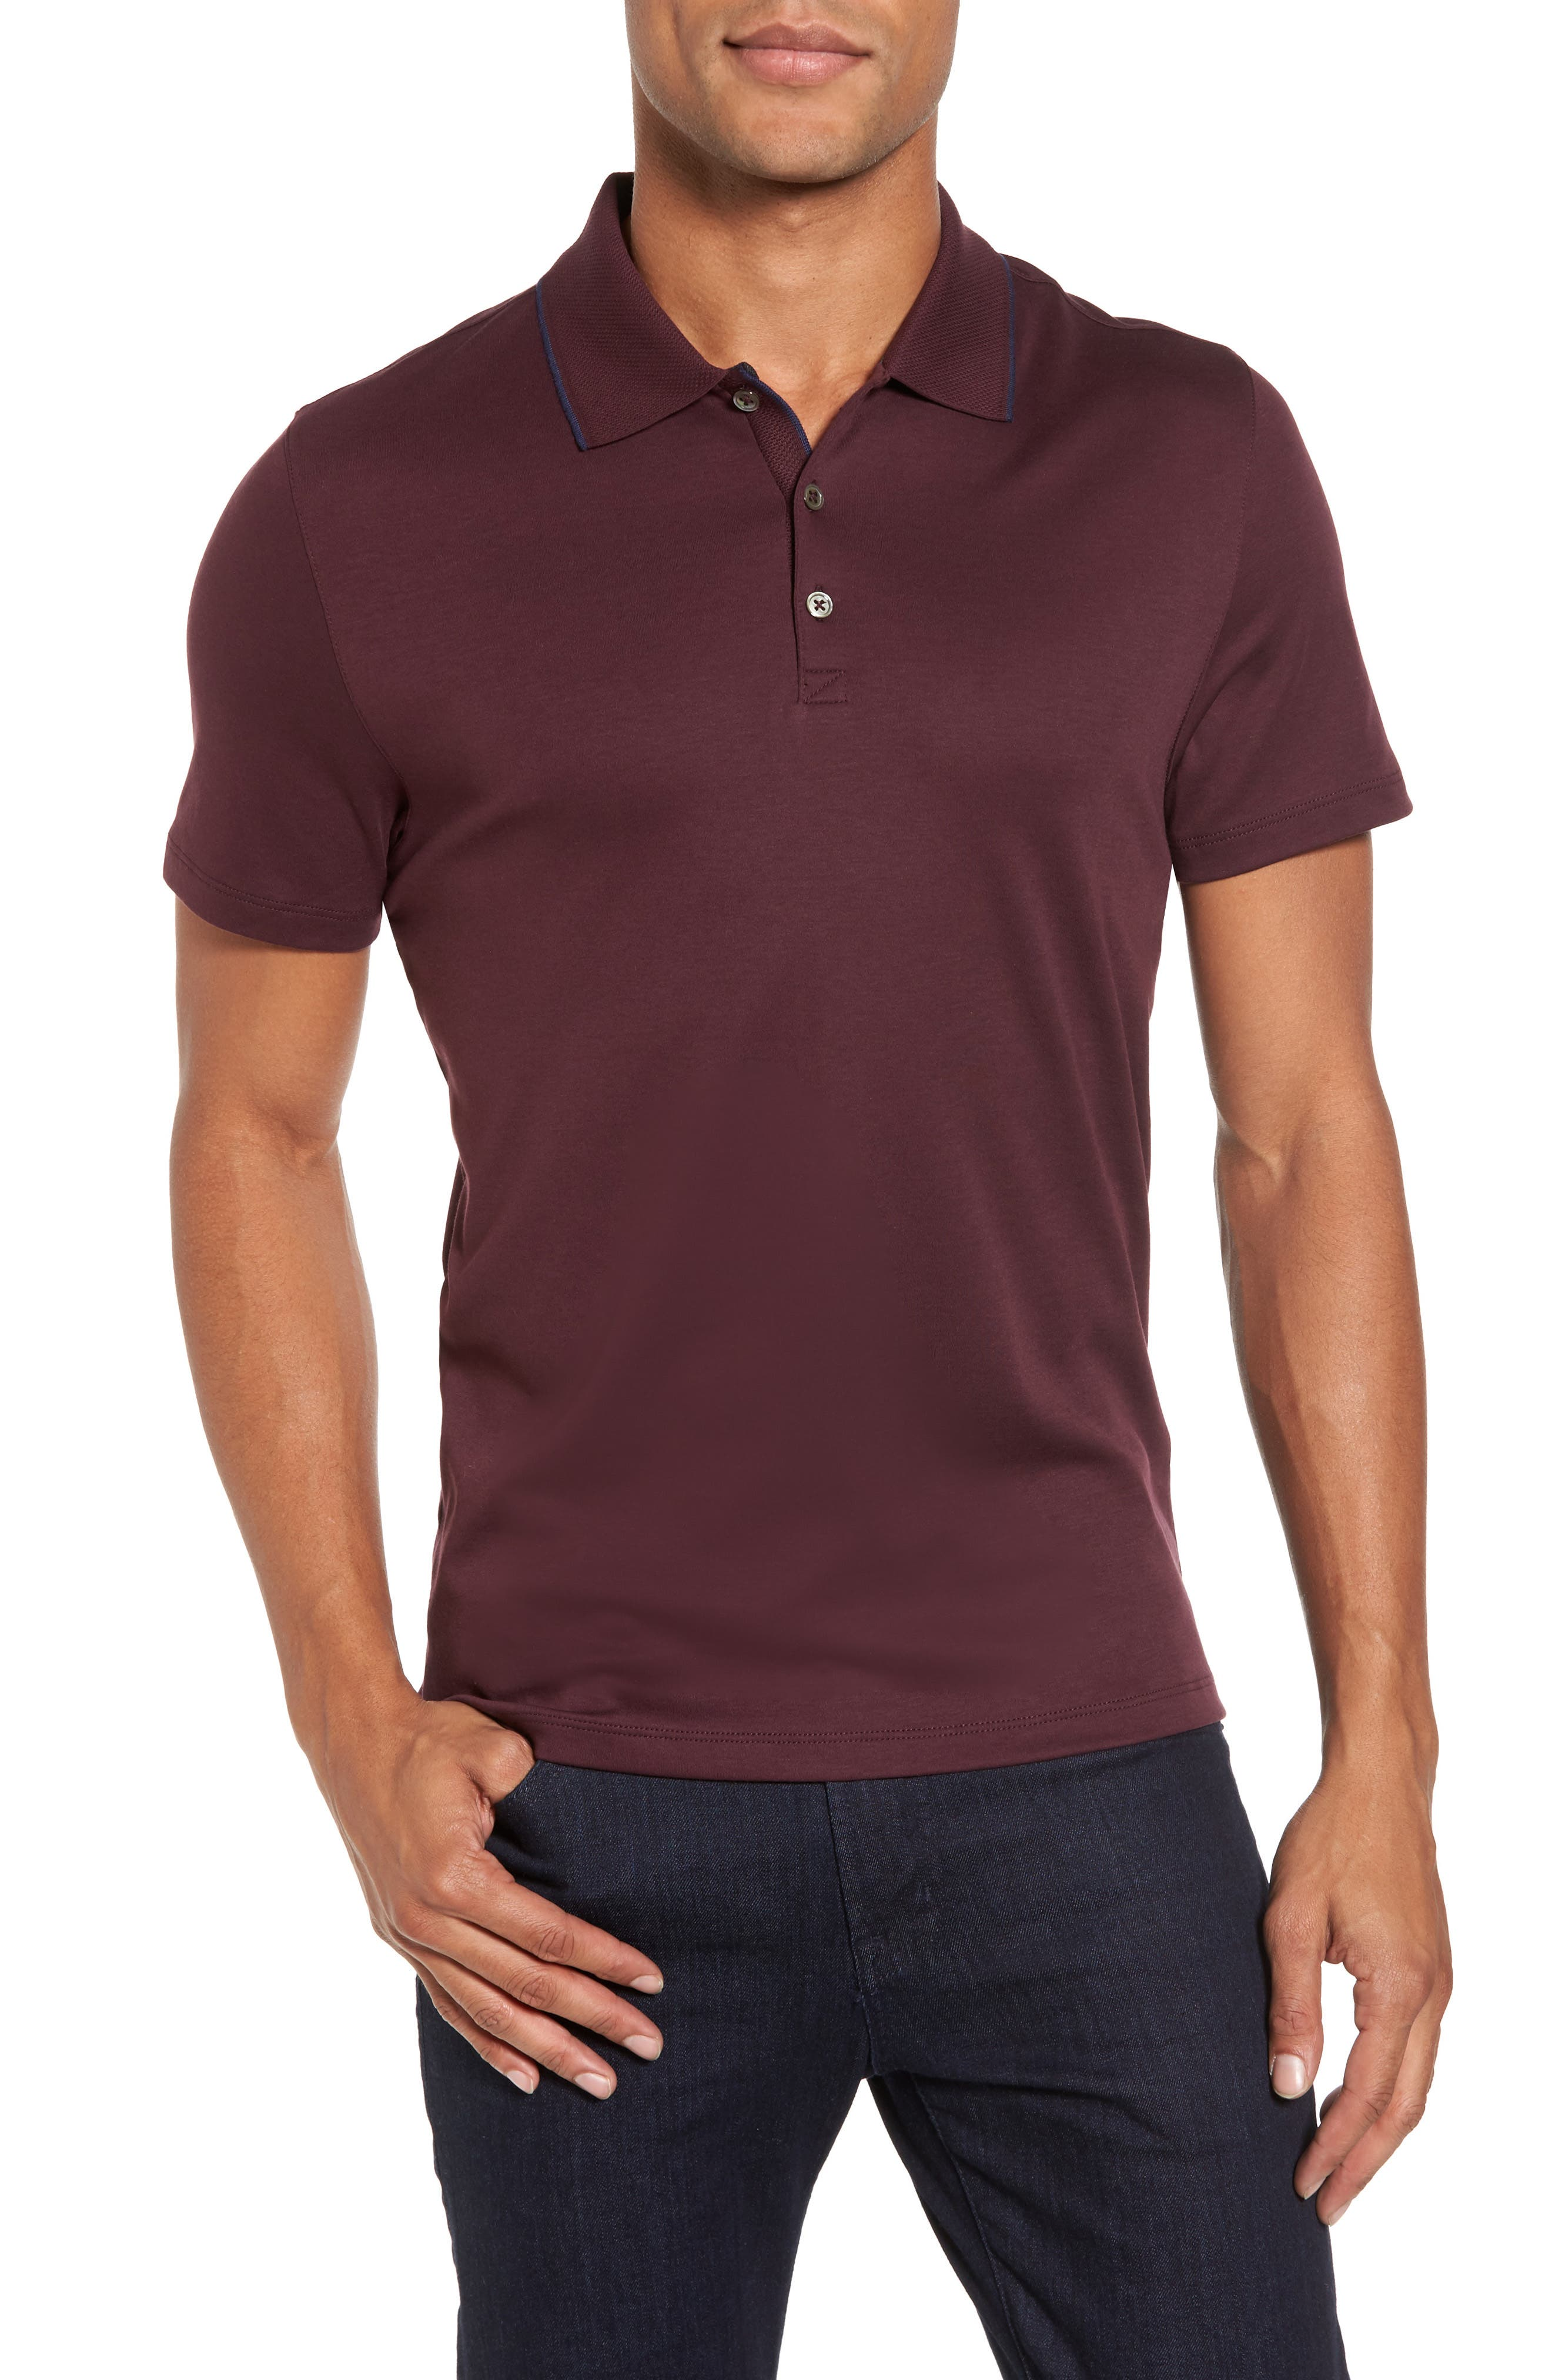 Grindstone Slim Fit Polo,                             Main thumbnail 1, color,                             Burgundy